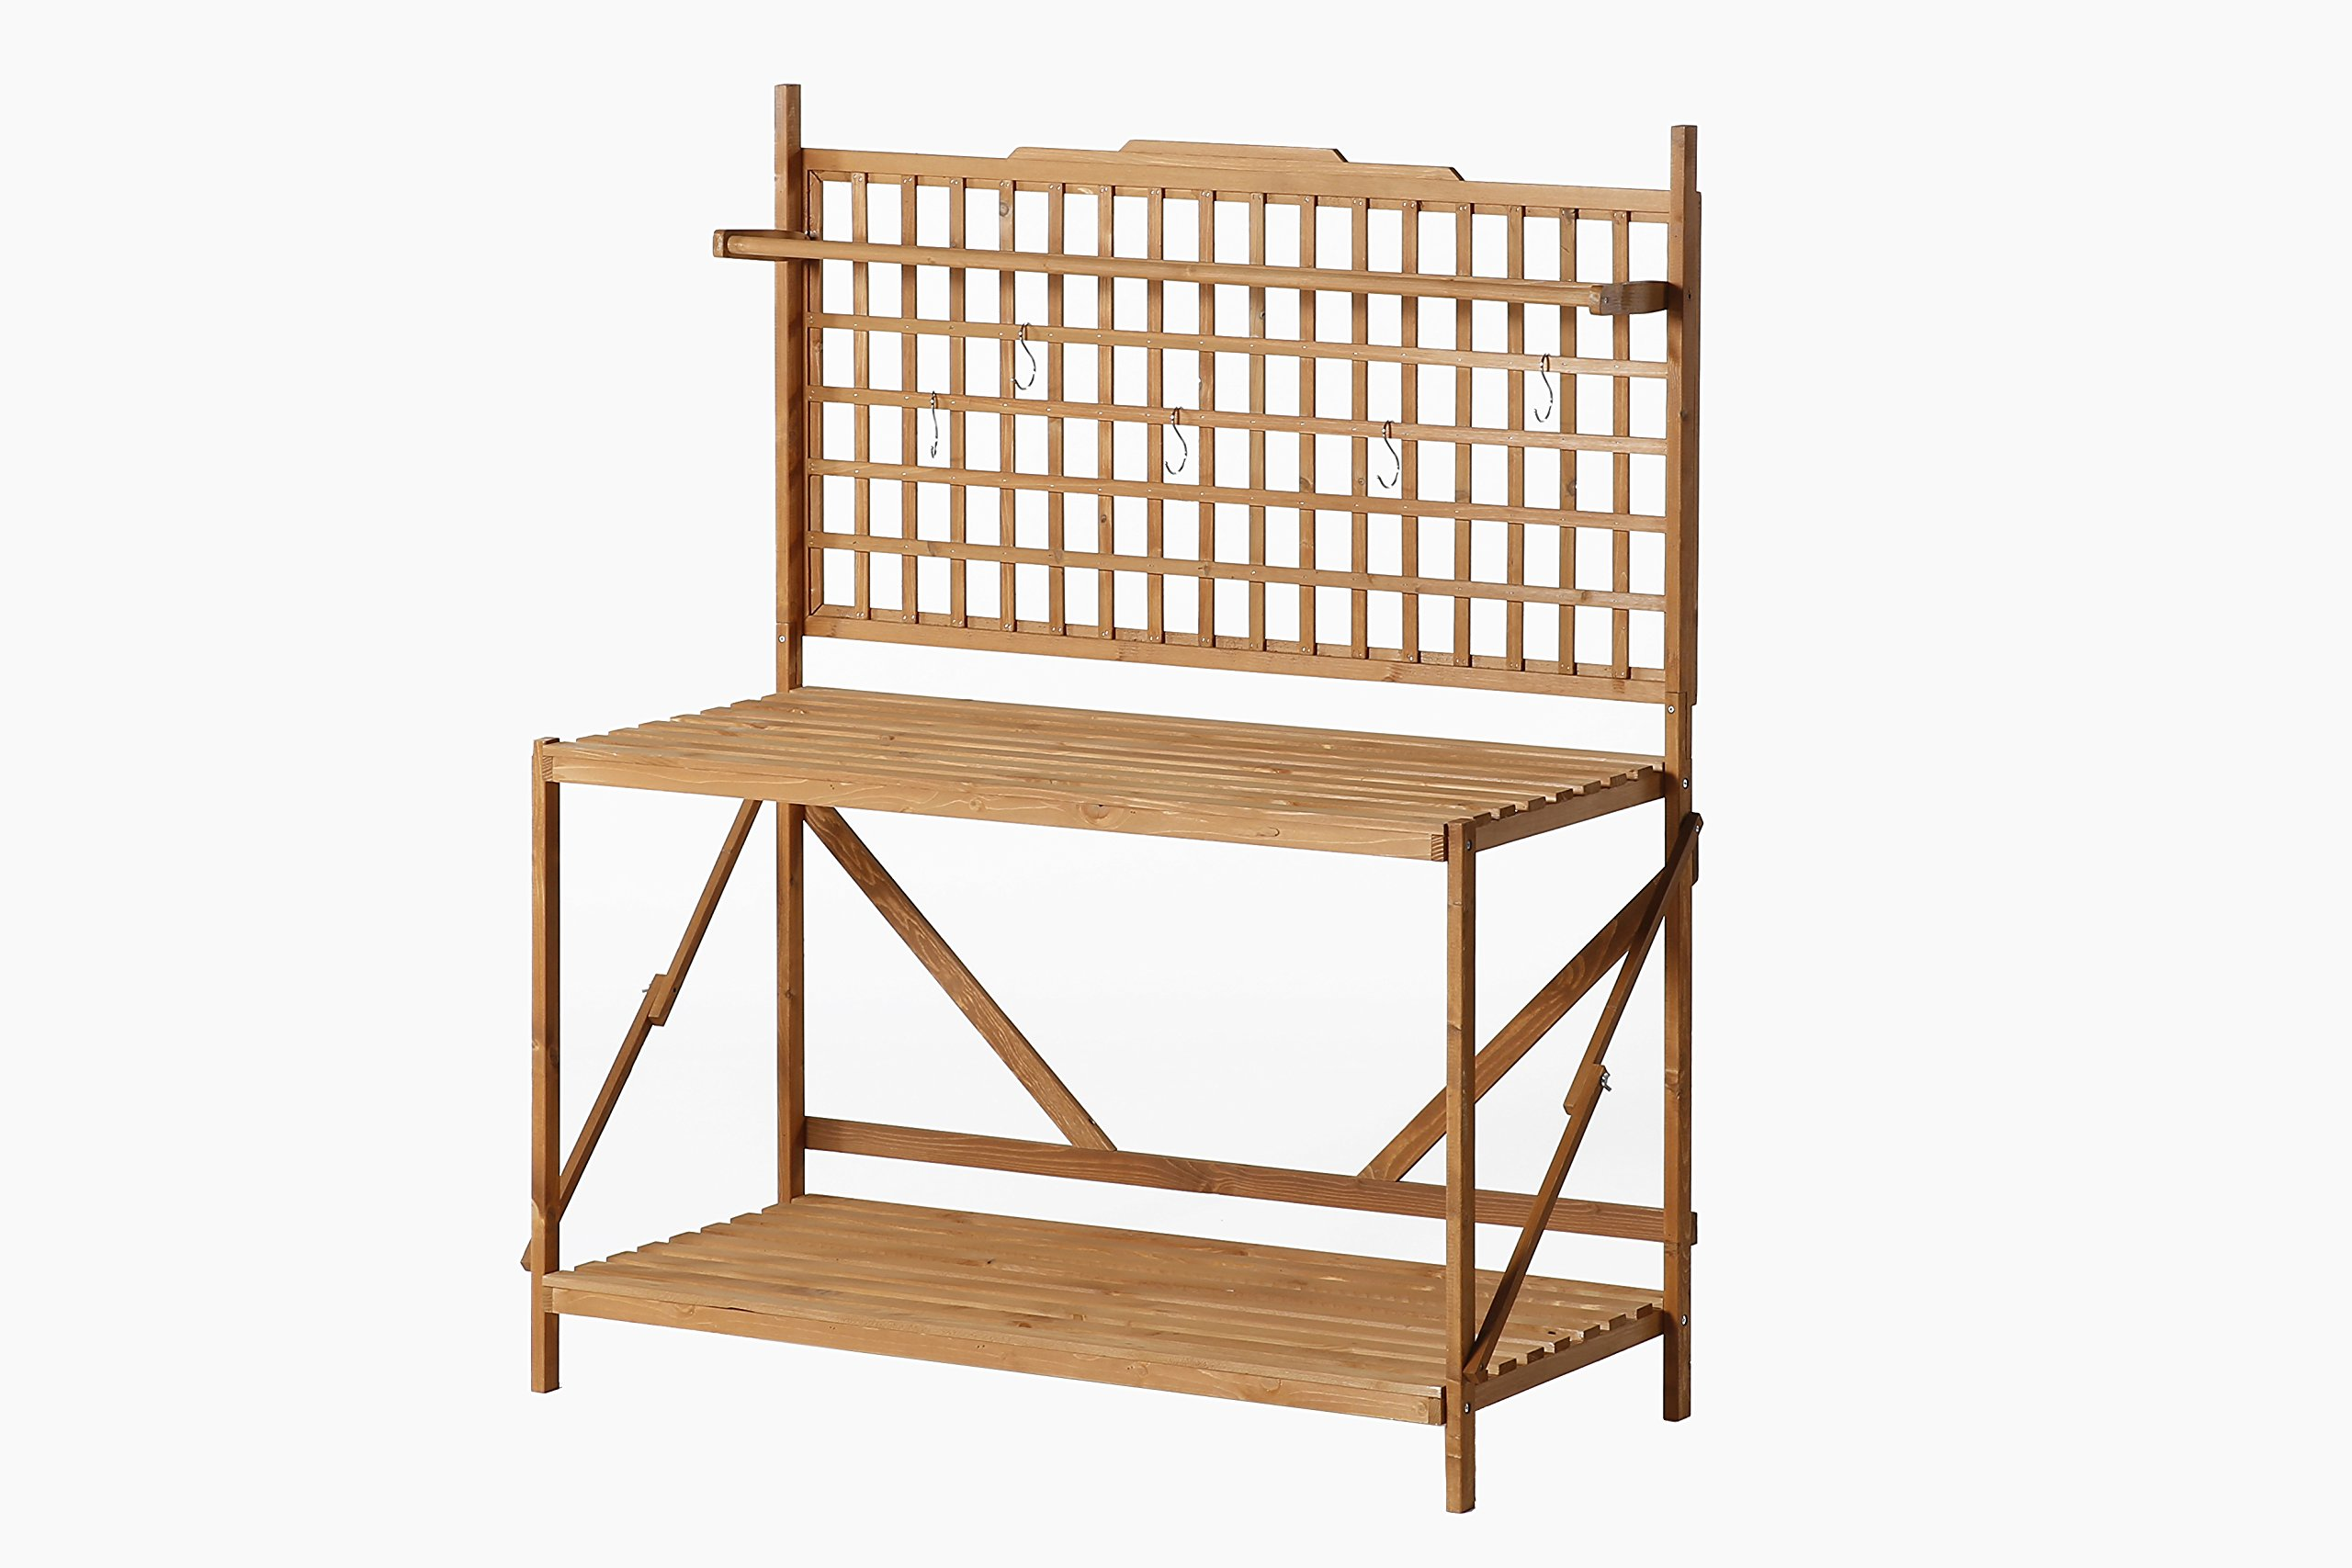 Patio Wise PWLPT-008 Large Potting Table with Hanging Rack by Patio Wise